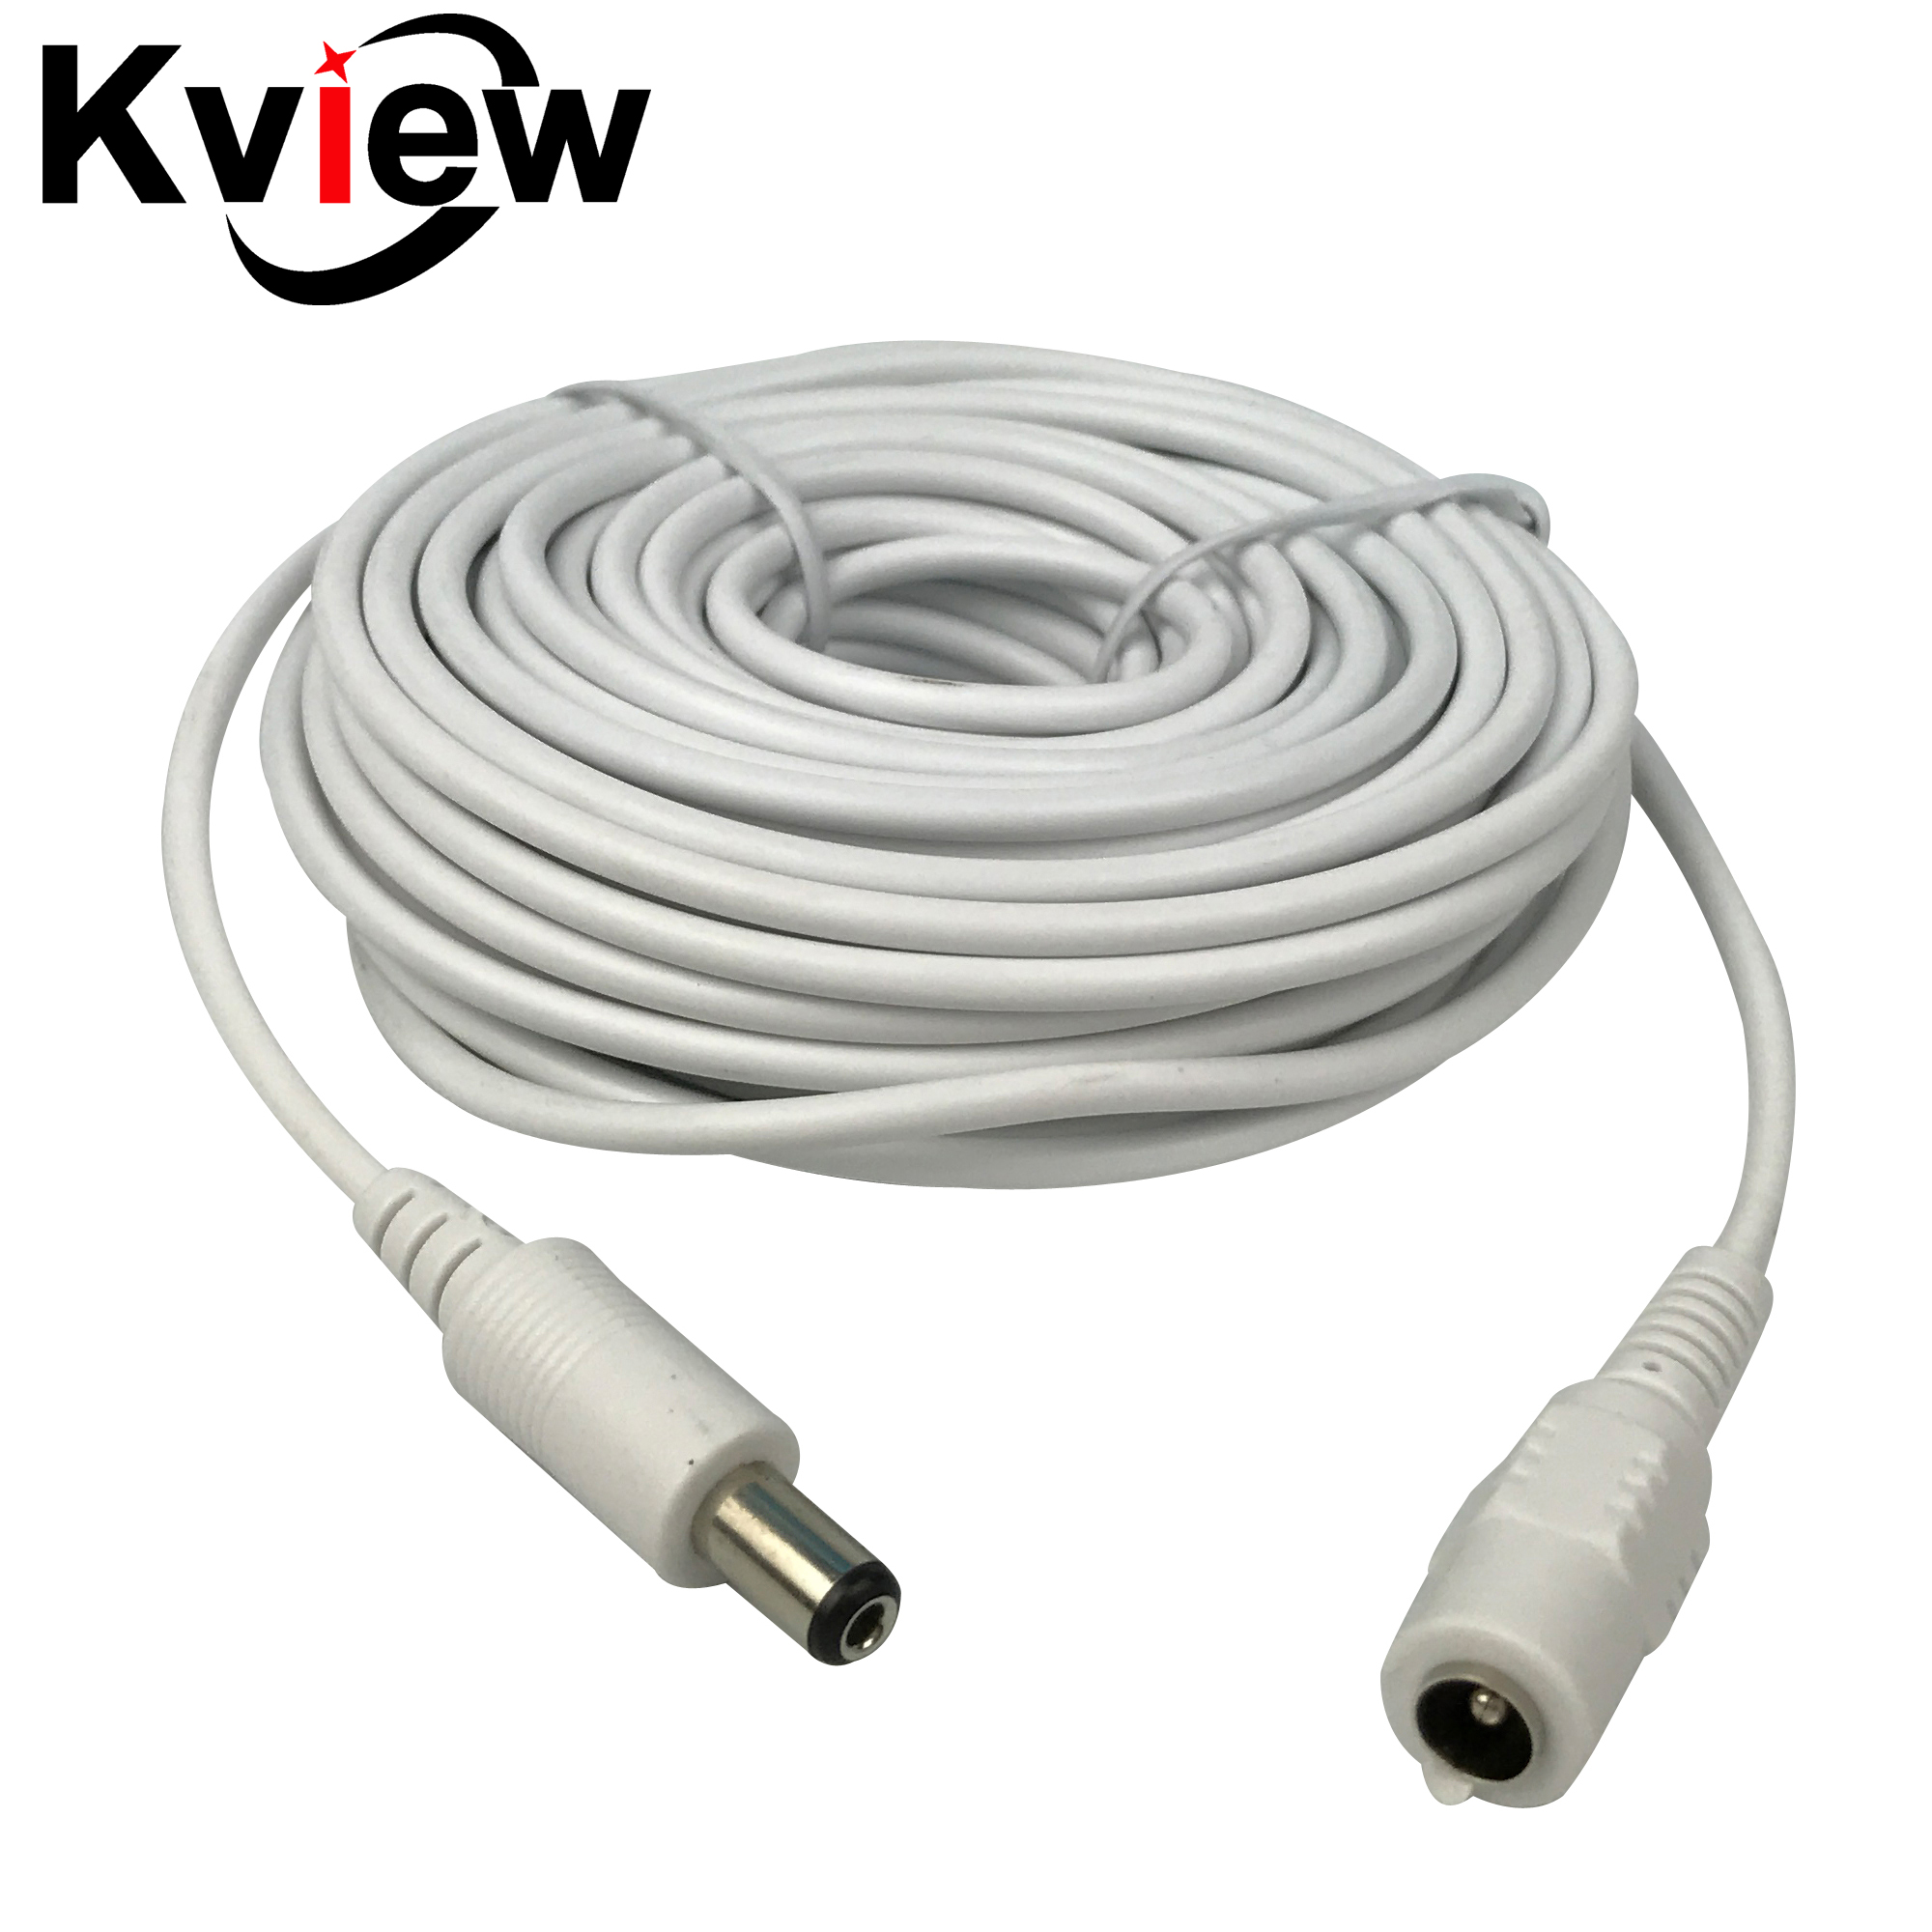 CCTV 10m(30ft) 2.1x5.5mm Dc 12v Power Extension Cable for Audio Security Cameras Ip Camera Dvr Standalone white color ypx 03 10m audio video power extension cable black 10m